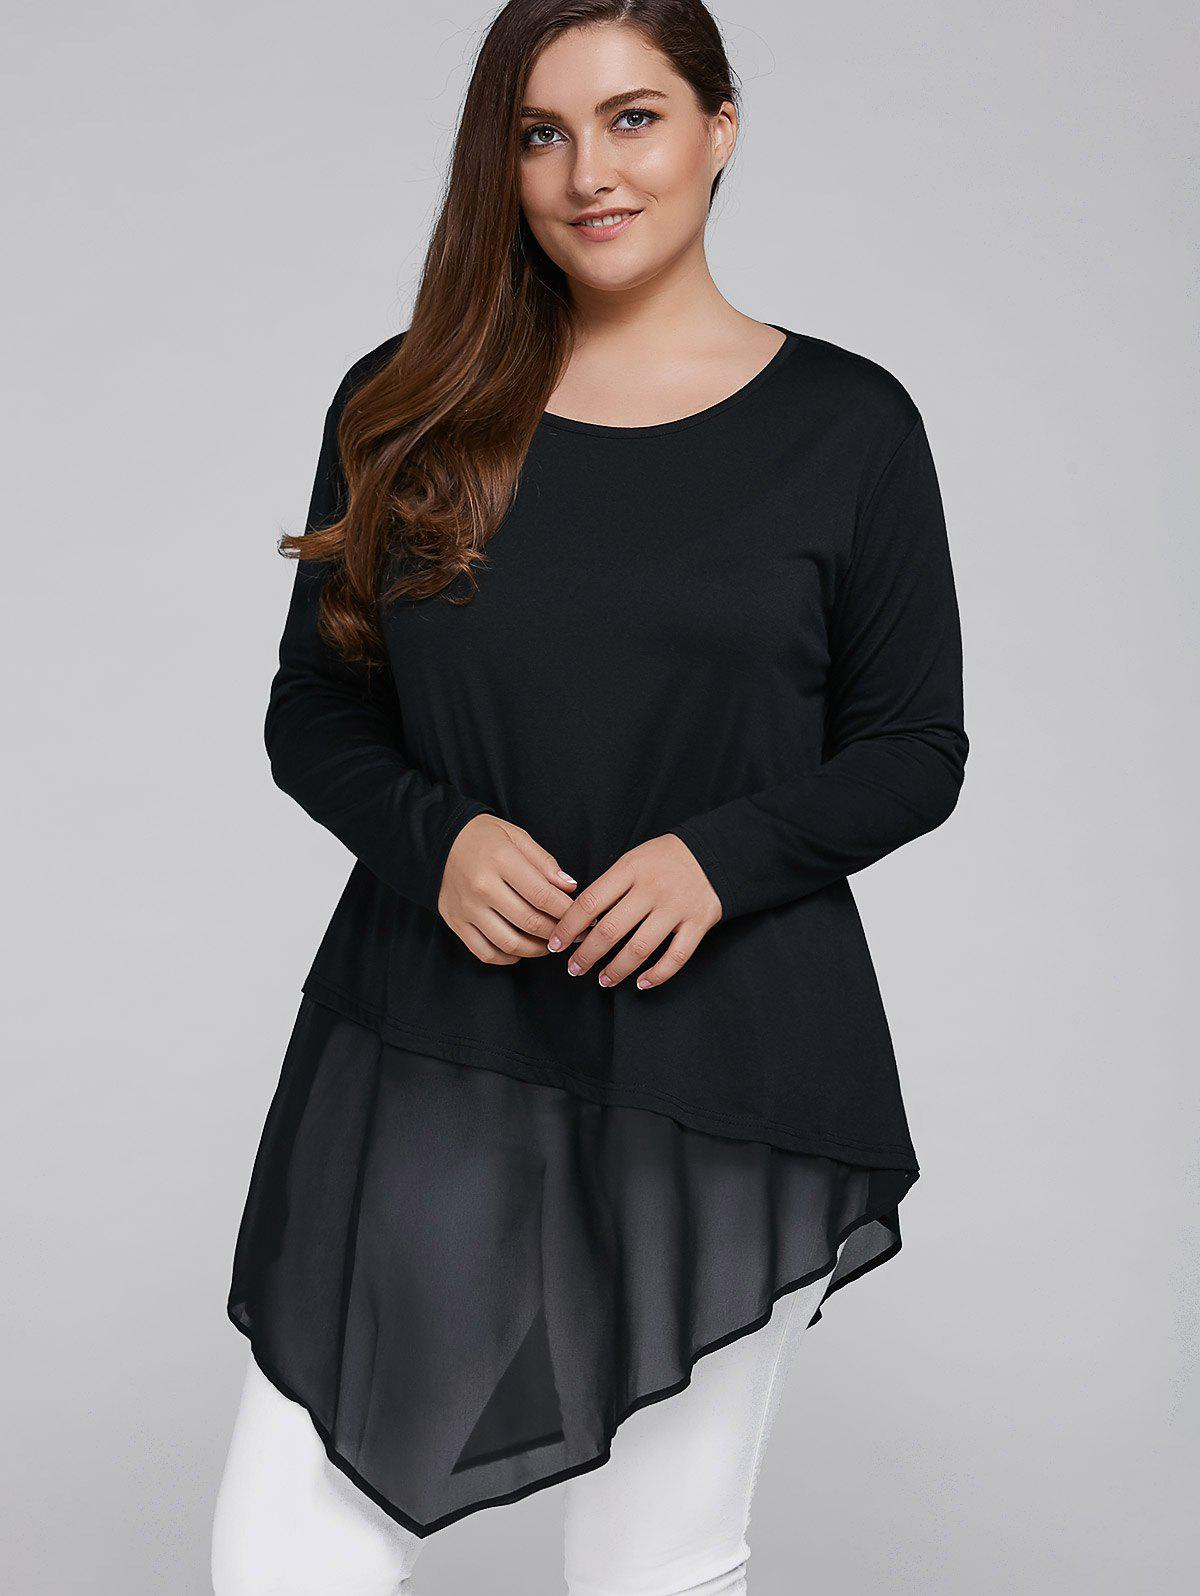 Plus Size Chiffon Patchwork Asymmetrical BlouseWOMEN<br><br>Size: 5XL; Color: BLACK; Material: Polyester,Spandex; Shirt Length: Long; Sleeve Length: Full; Collar: Scoop Neck; Style: Fashion; Season: Fall,Spring; Pattern Type: Solid; Weight: 0.380kg; Package Contents: 1 x Blouse;